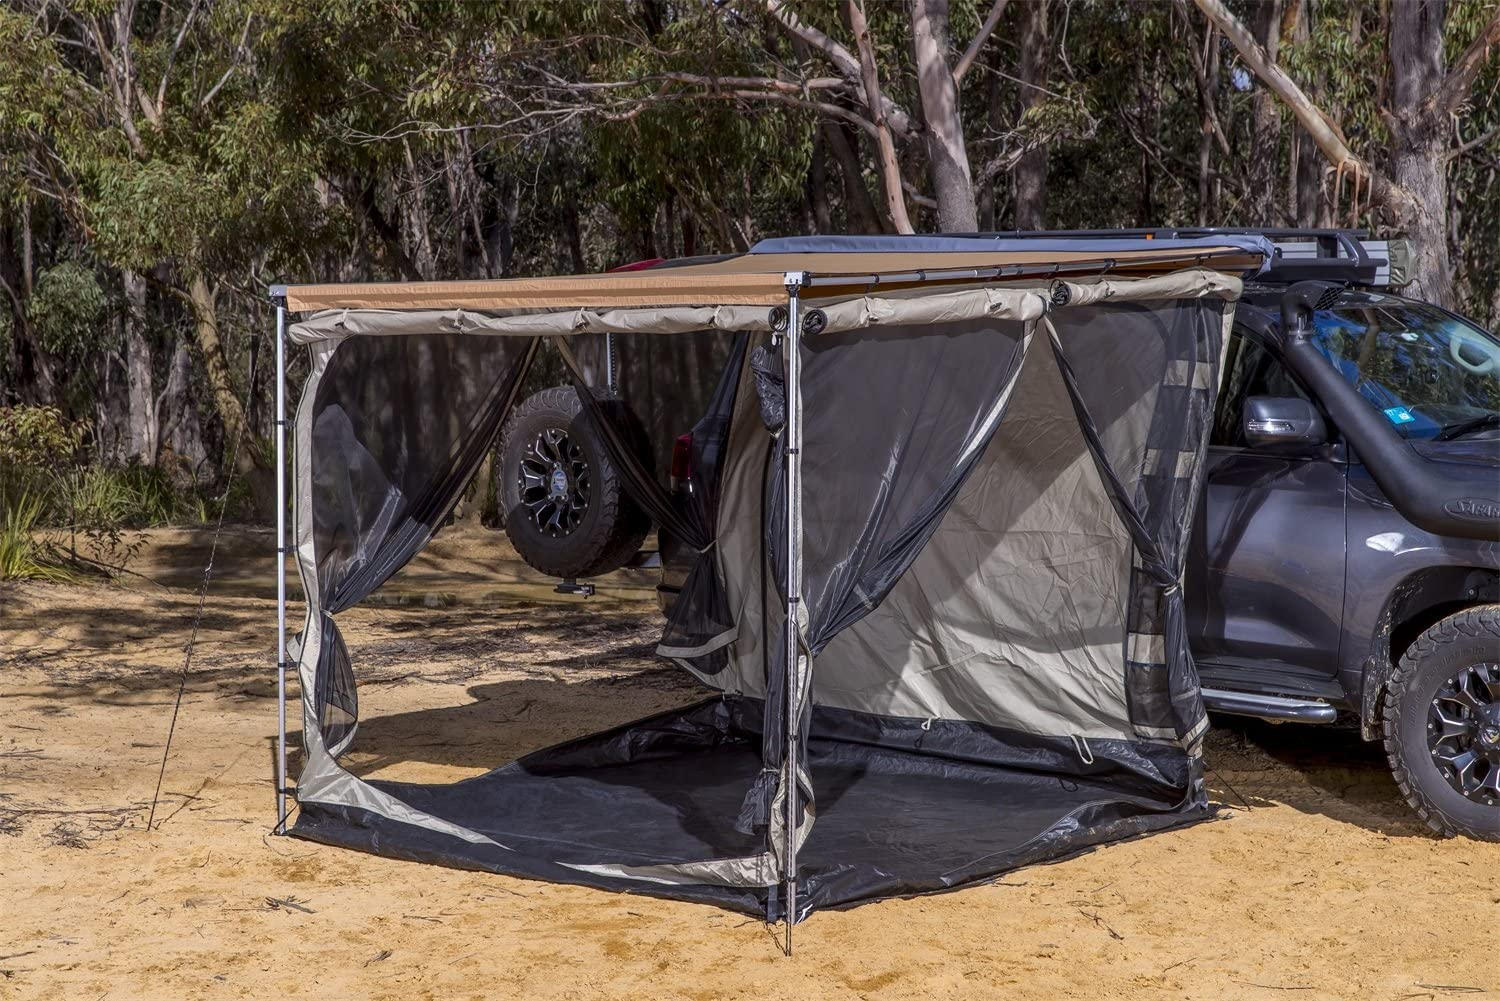 Awning ARB 4x4 Accessories ARB4402A